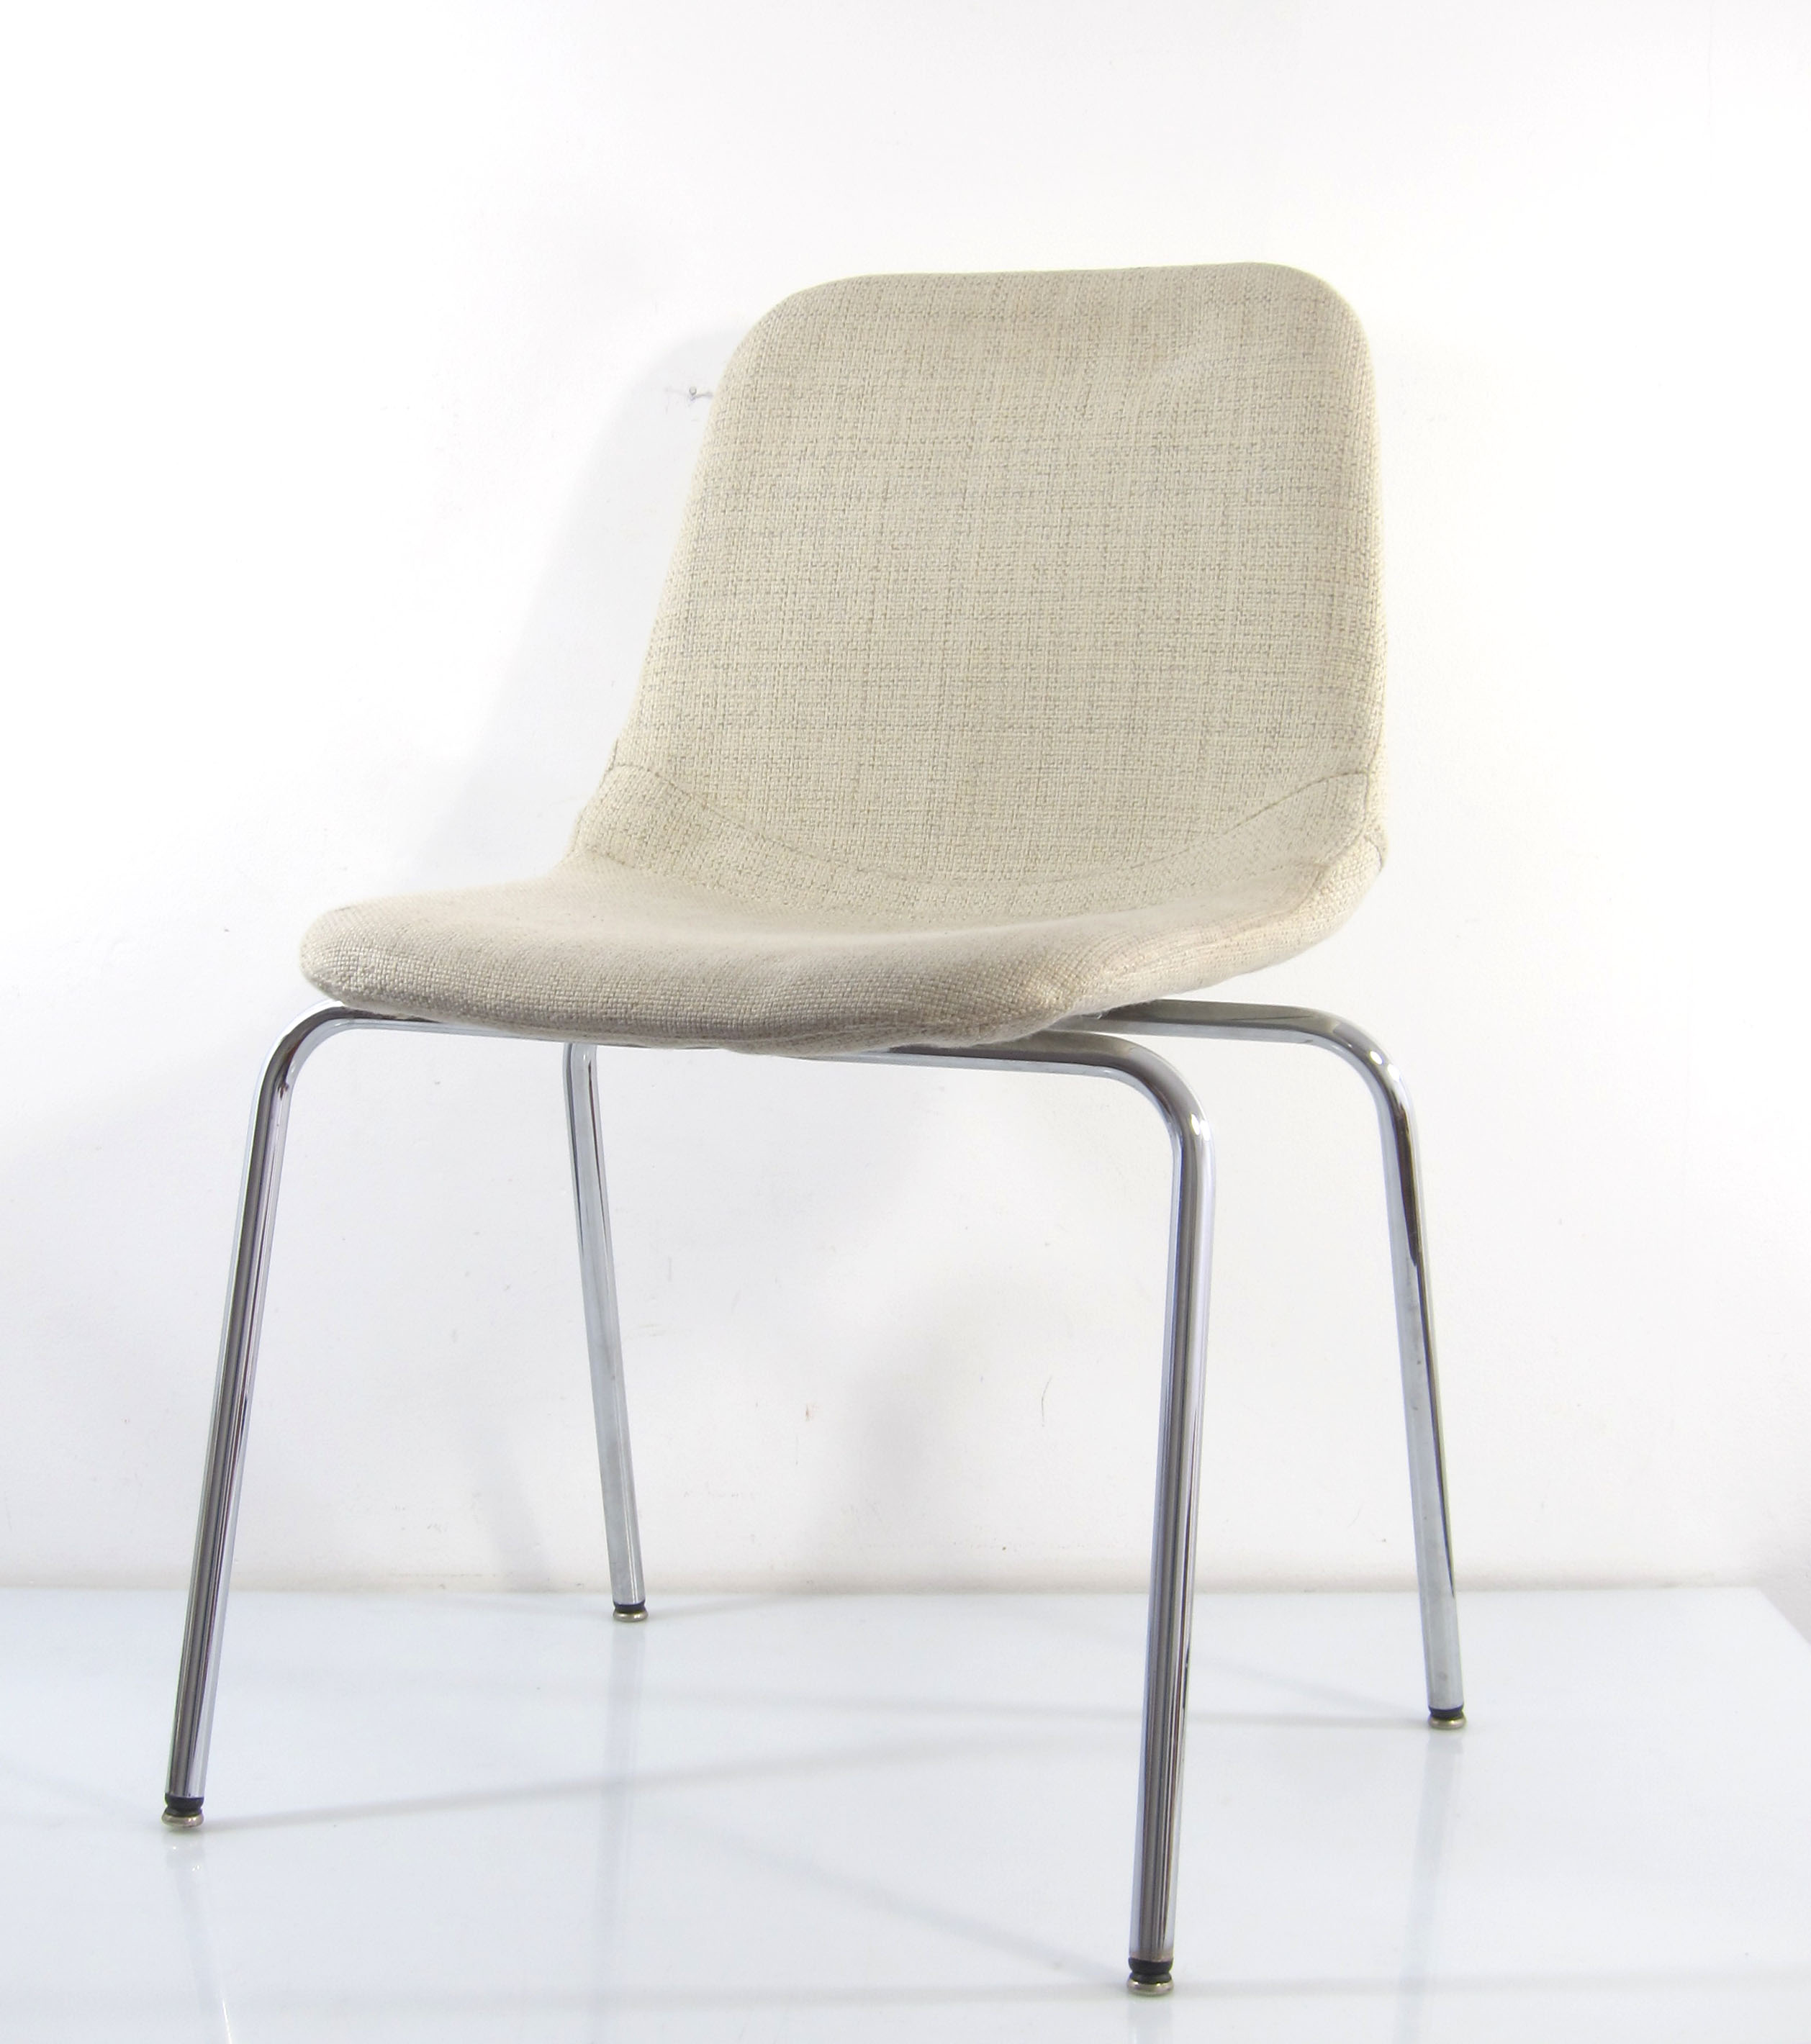 Chairs by Ico & Luisa Parisi for MIM, 1970s